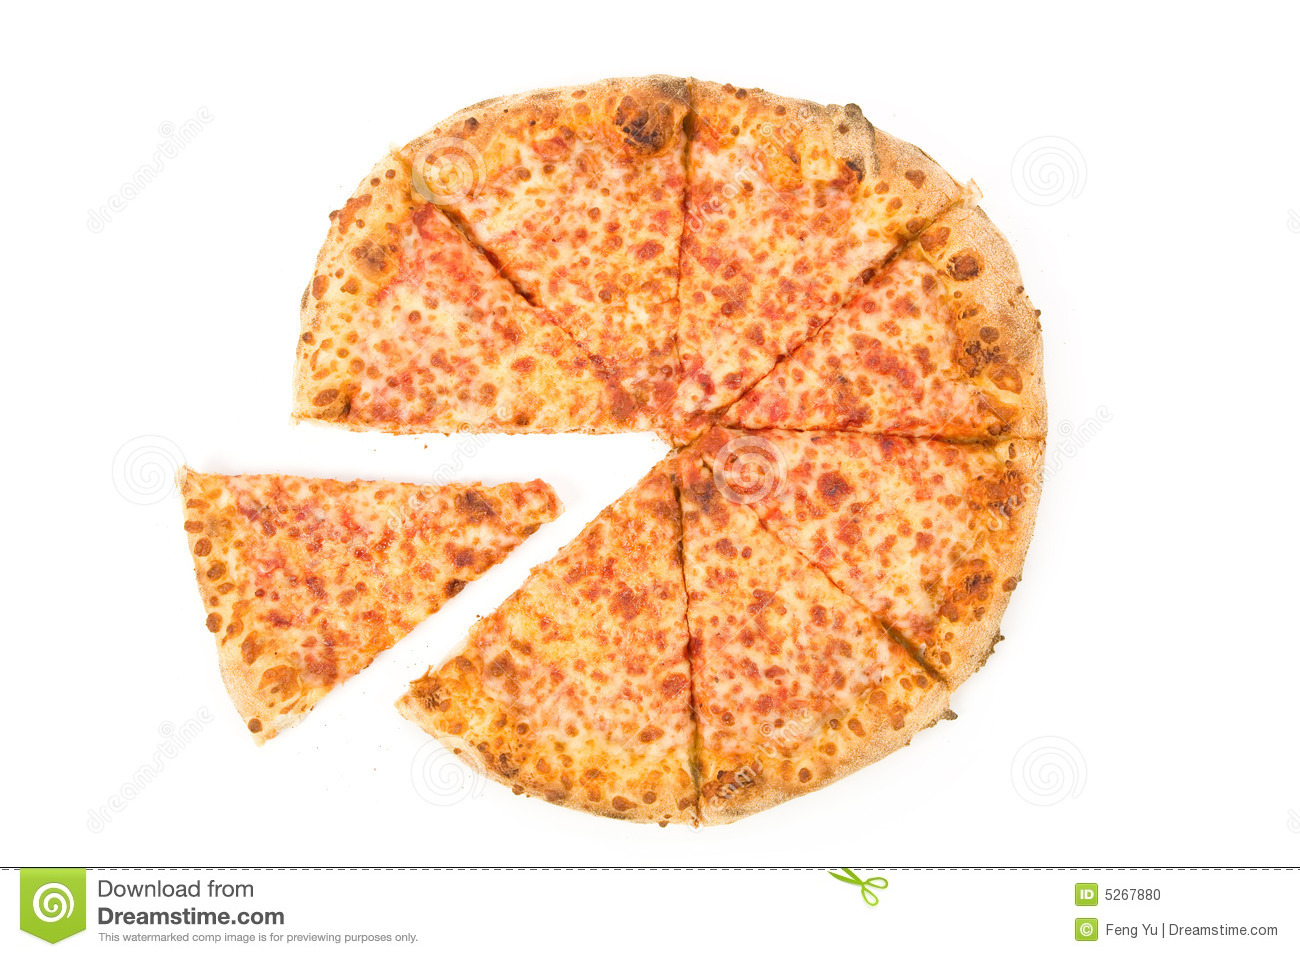 Cheese Pizza with white background, close up.